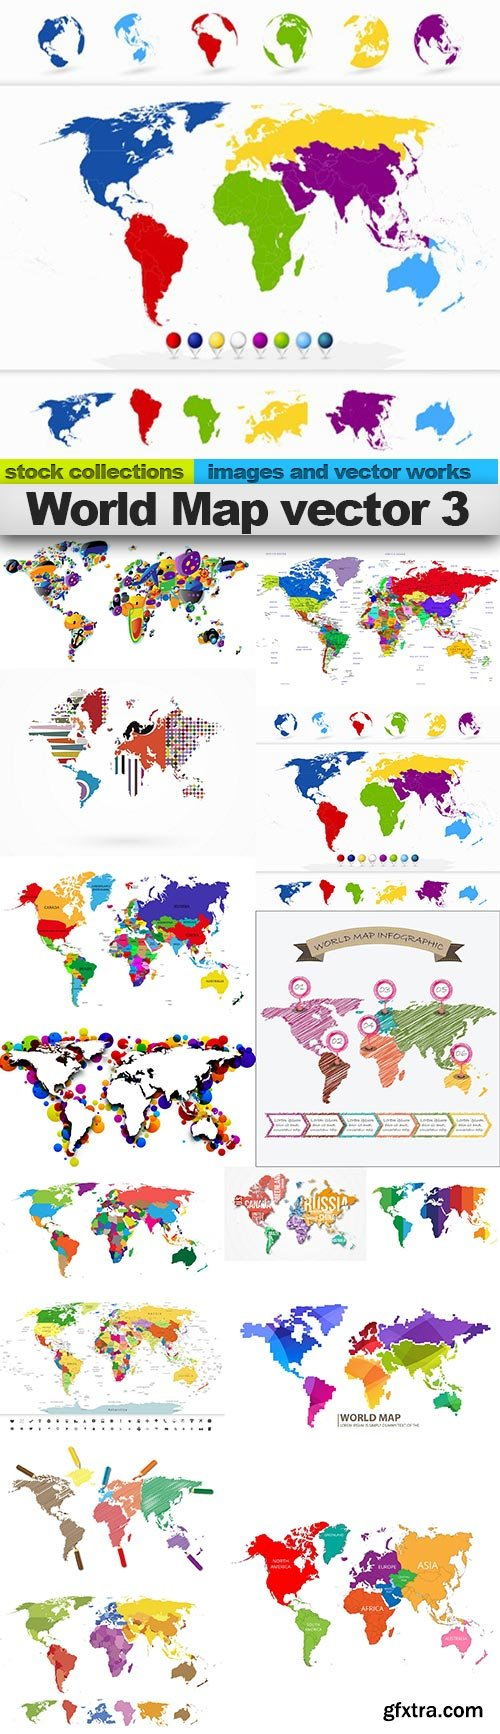 World Map vector 3, 15 x EPS